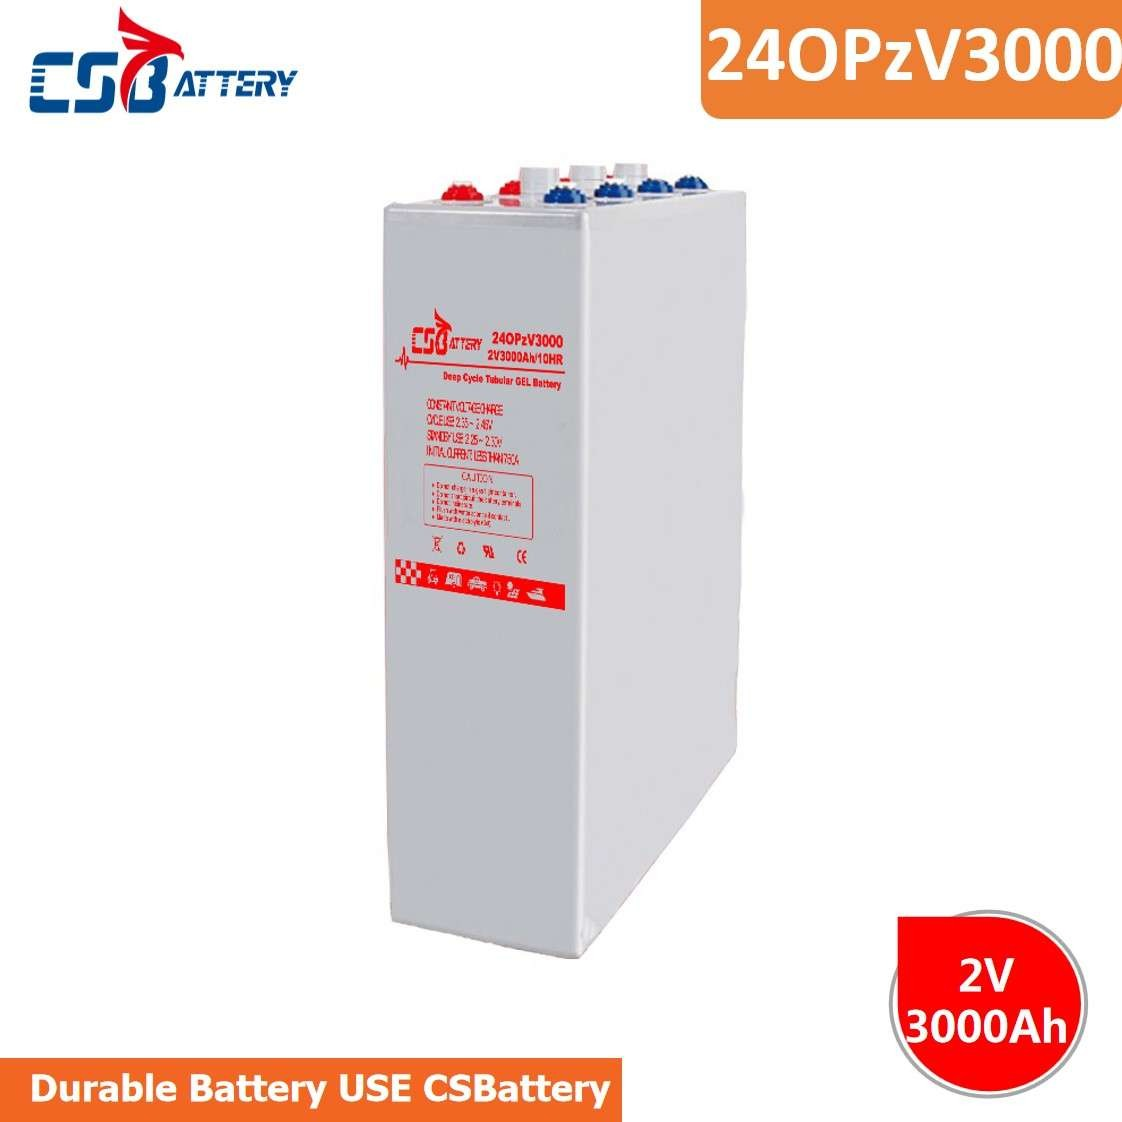 CSBattery 2V3000Ah Top Sell 20+ Years Working  Battery For Powered-Heater/Machine/Power-Tools/Turf&Irrigation-Systems